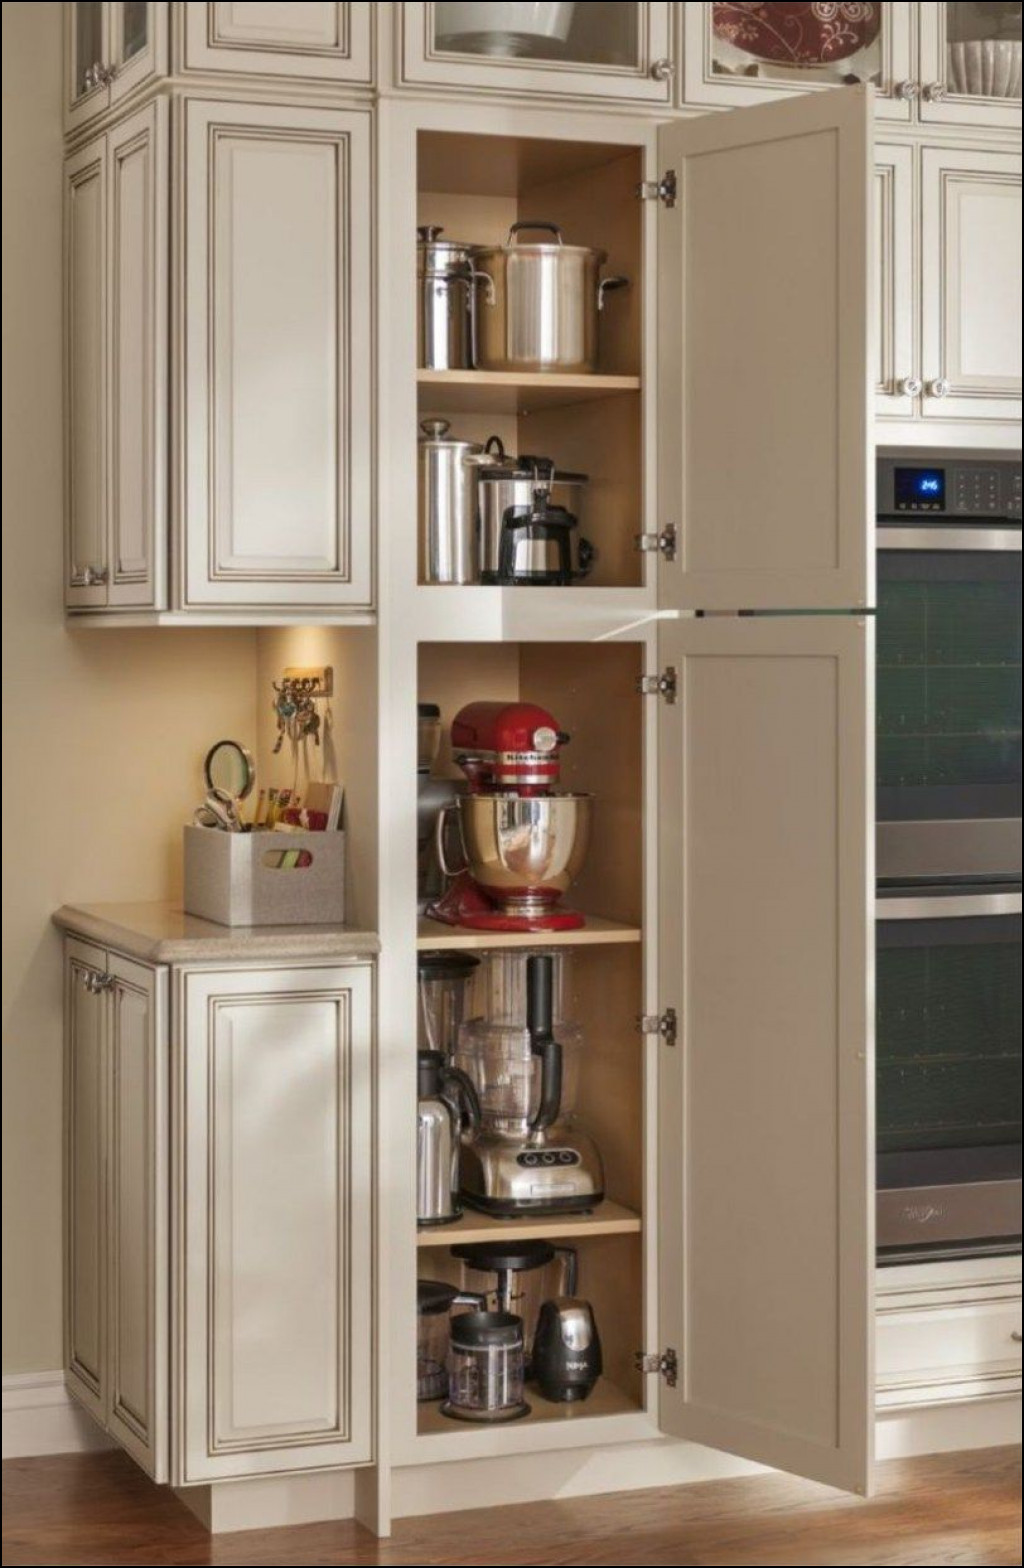 extra-large-china-cabinet-best-of-44-smart-kitchen-cabinet-organization-ideas-of-extra-large-china-cabinet.jpg